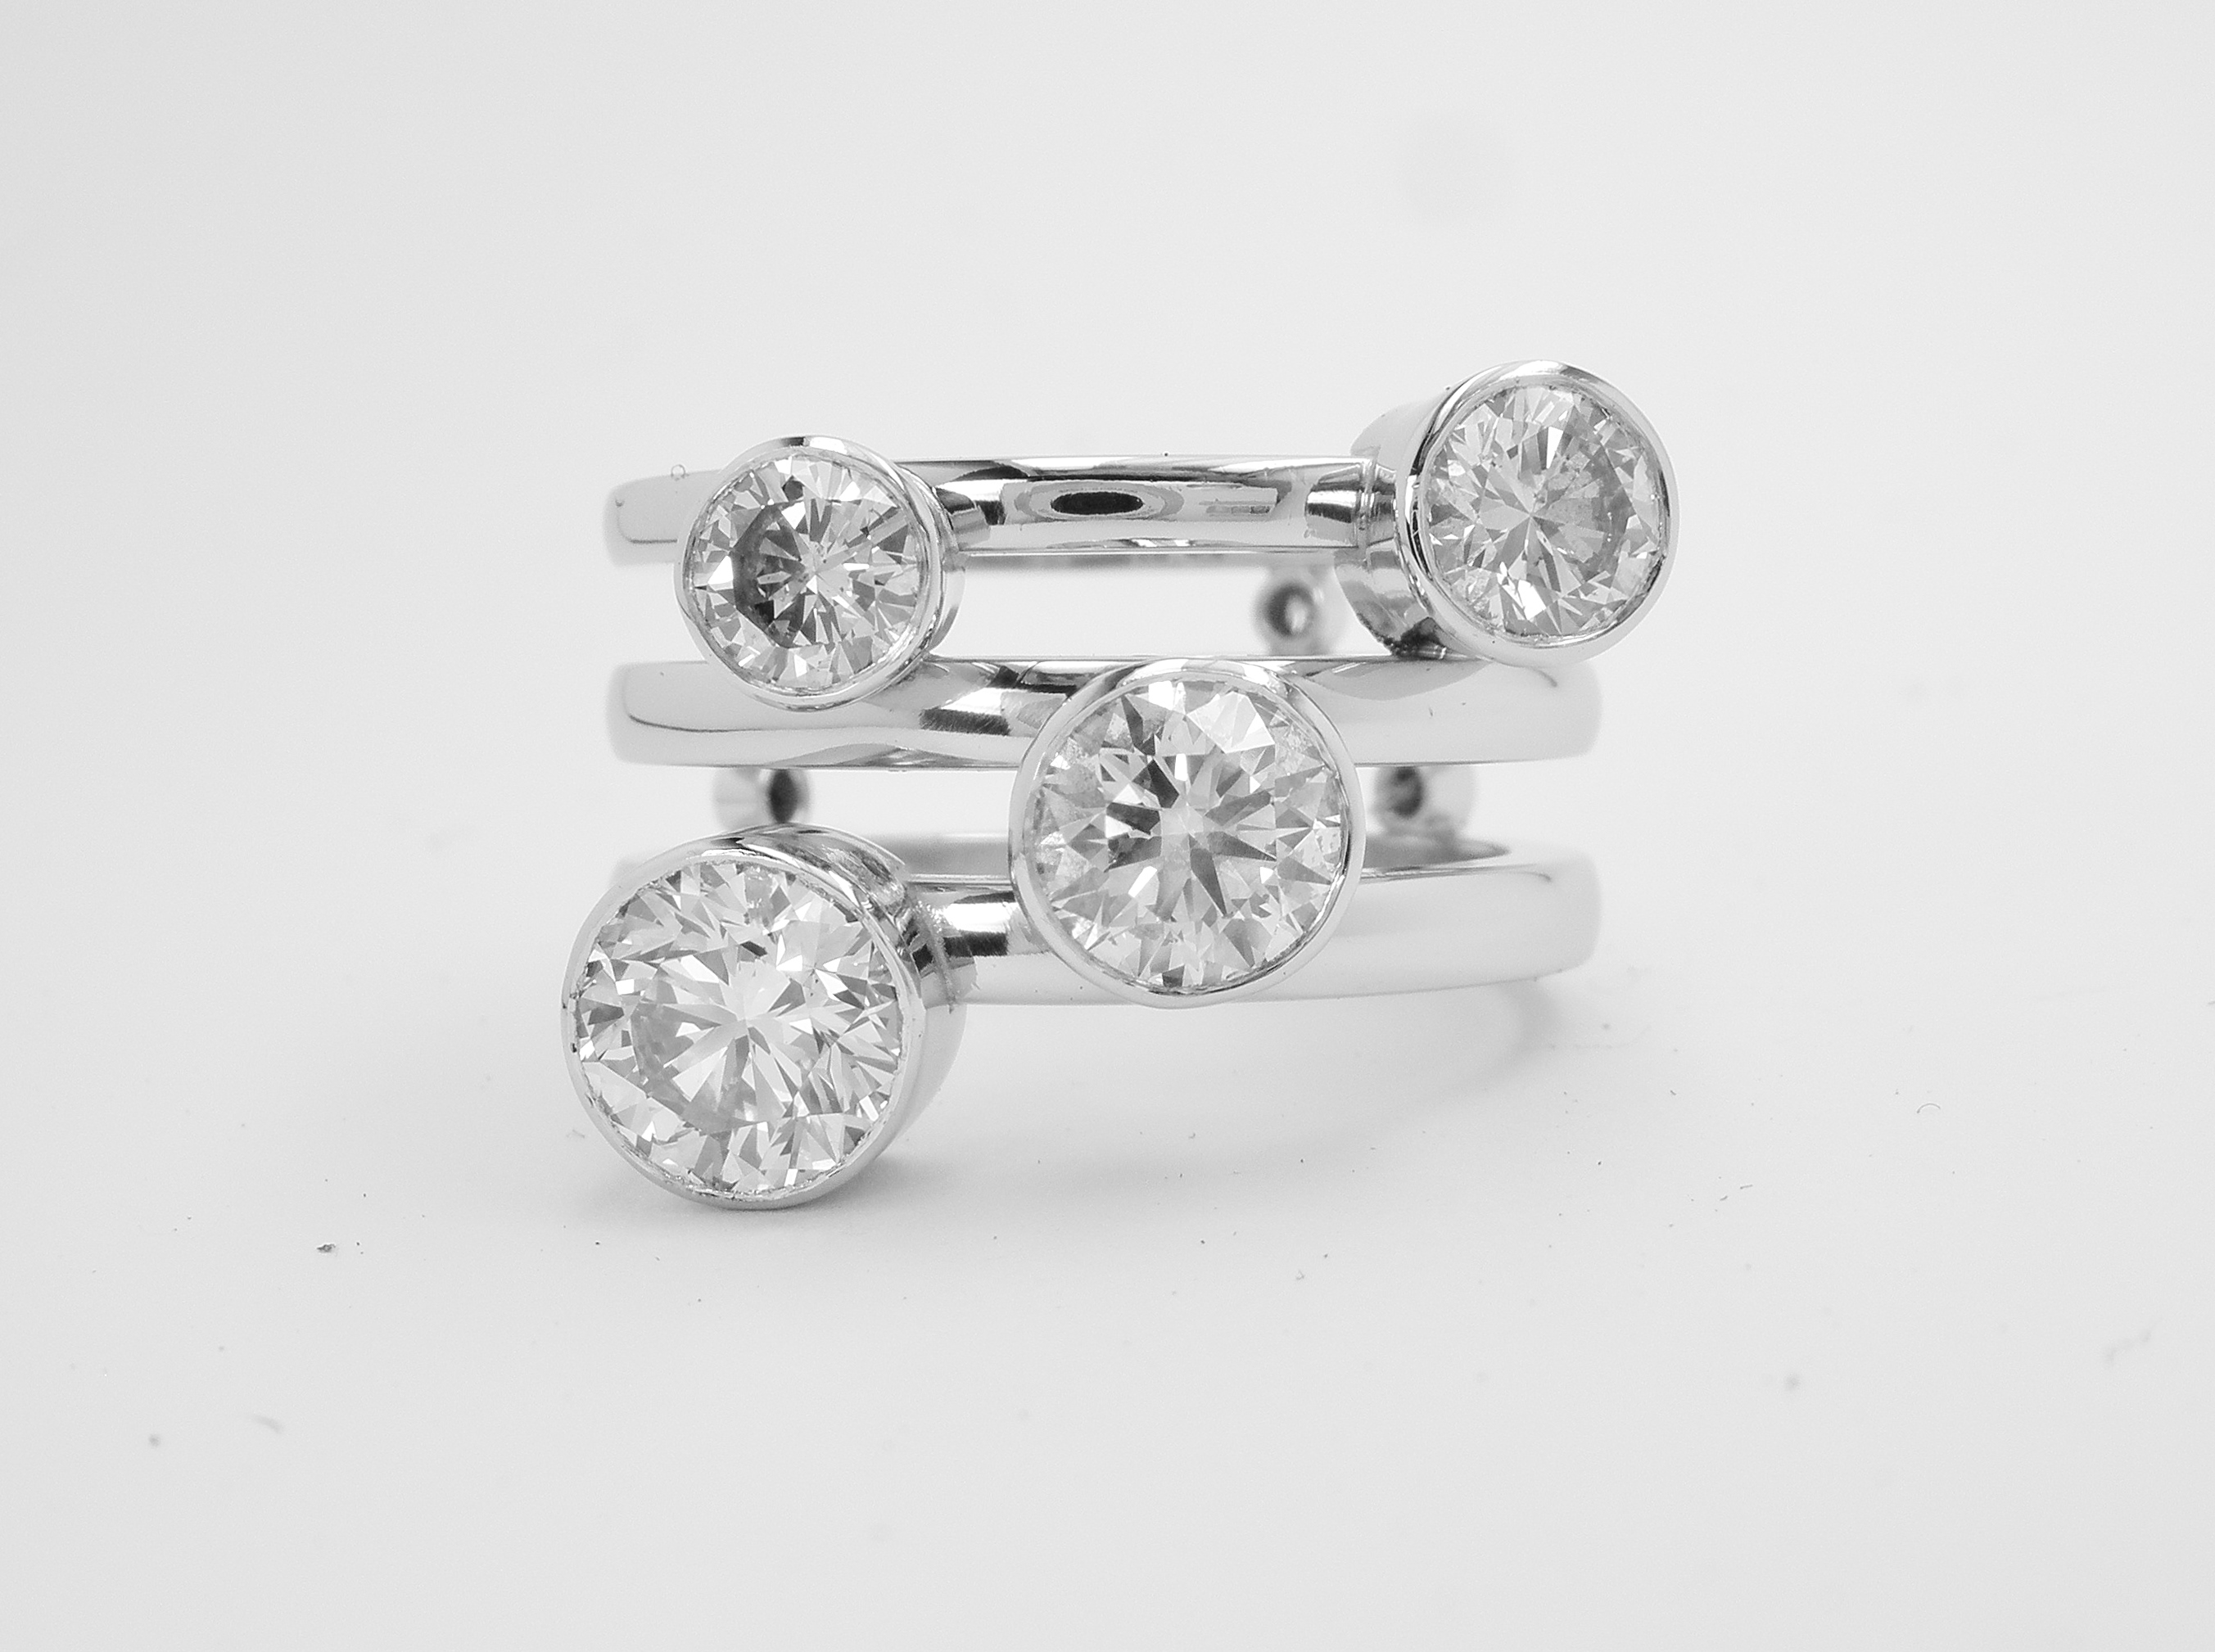 Round brilliant cut diamond 4 stone bezel set (rub-over set) ring with a triple parallel banded ring shank set with small diamonds on reverse side of bands.